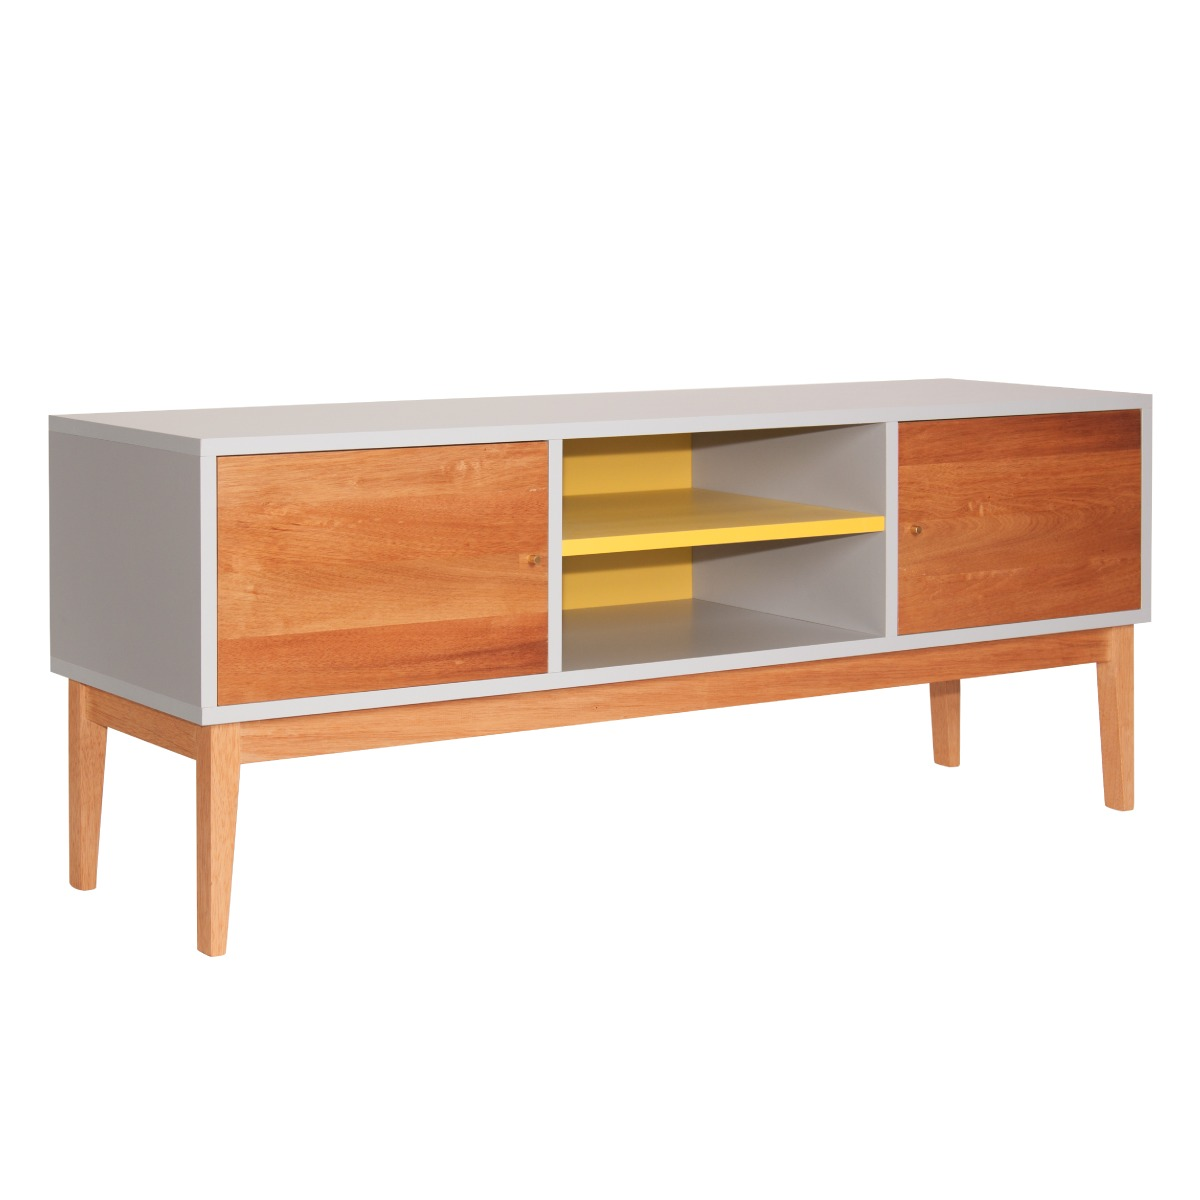 Rack tv madera dise o amarillo montte muebles aparador led for Muebles usados montevideo